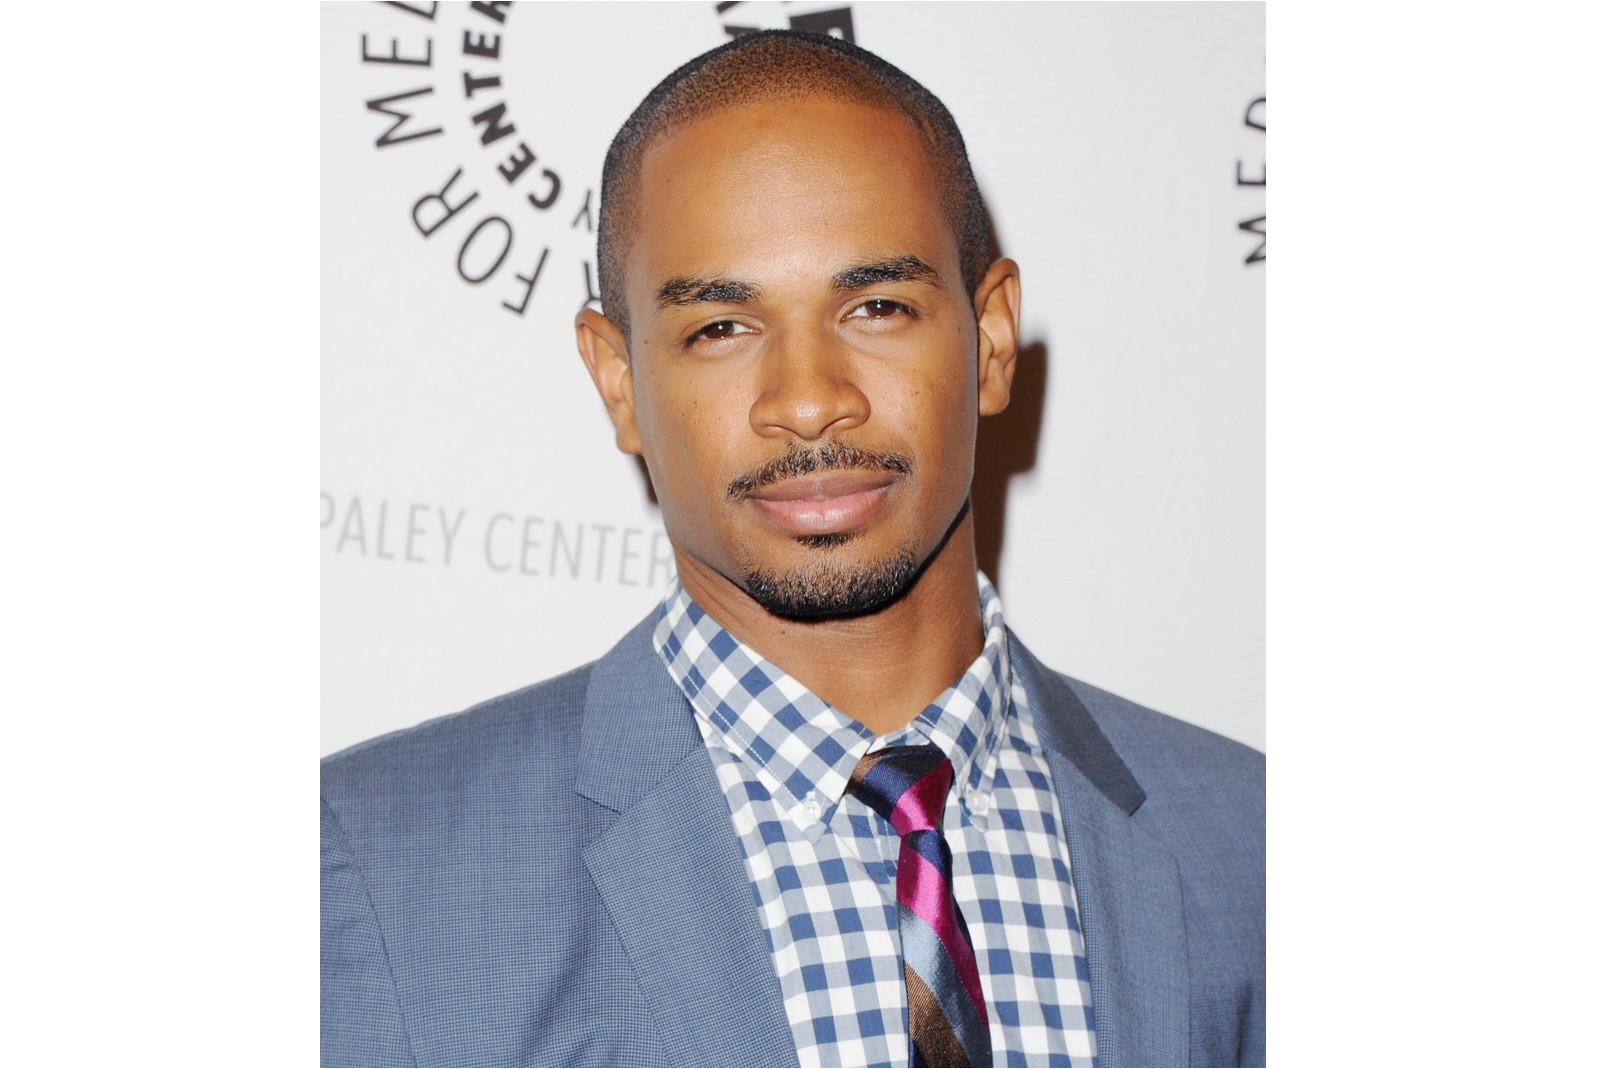 Damon wayans jr starts filming 39 how to be single 39 the for Damon wayans jr